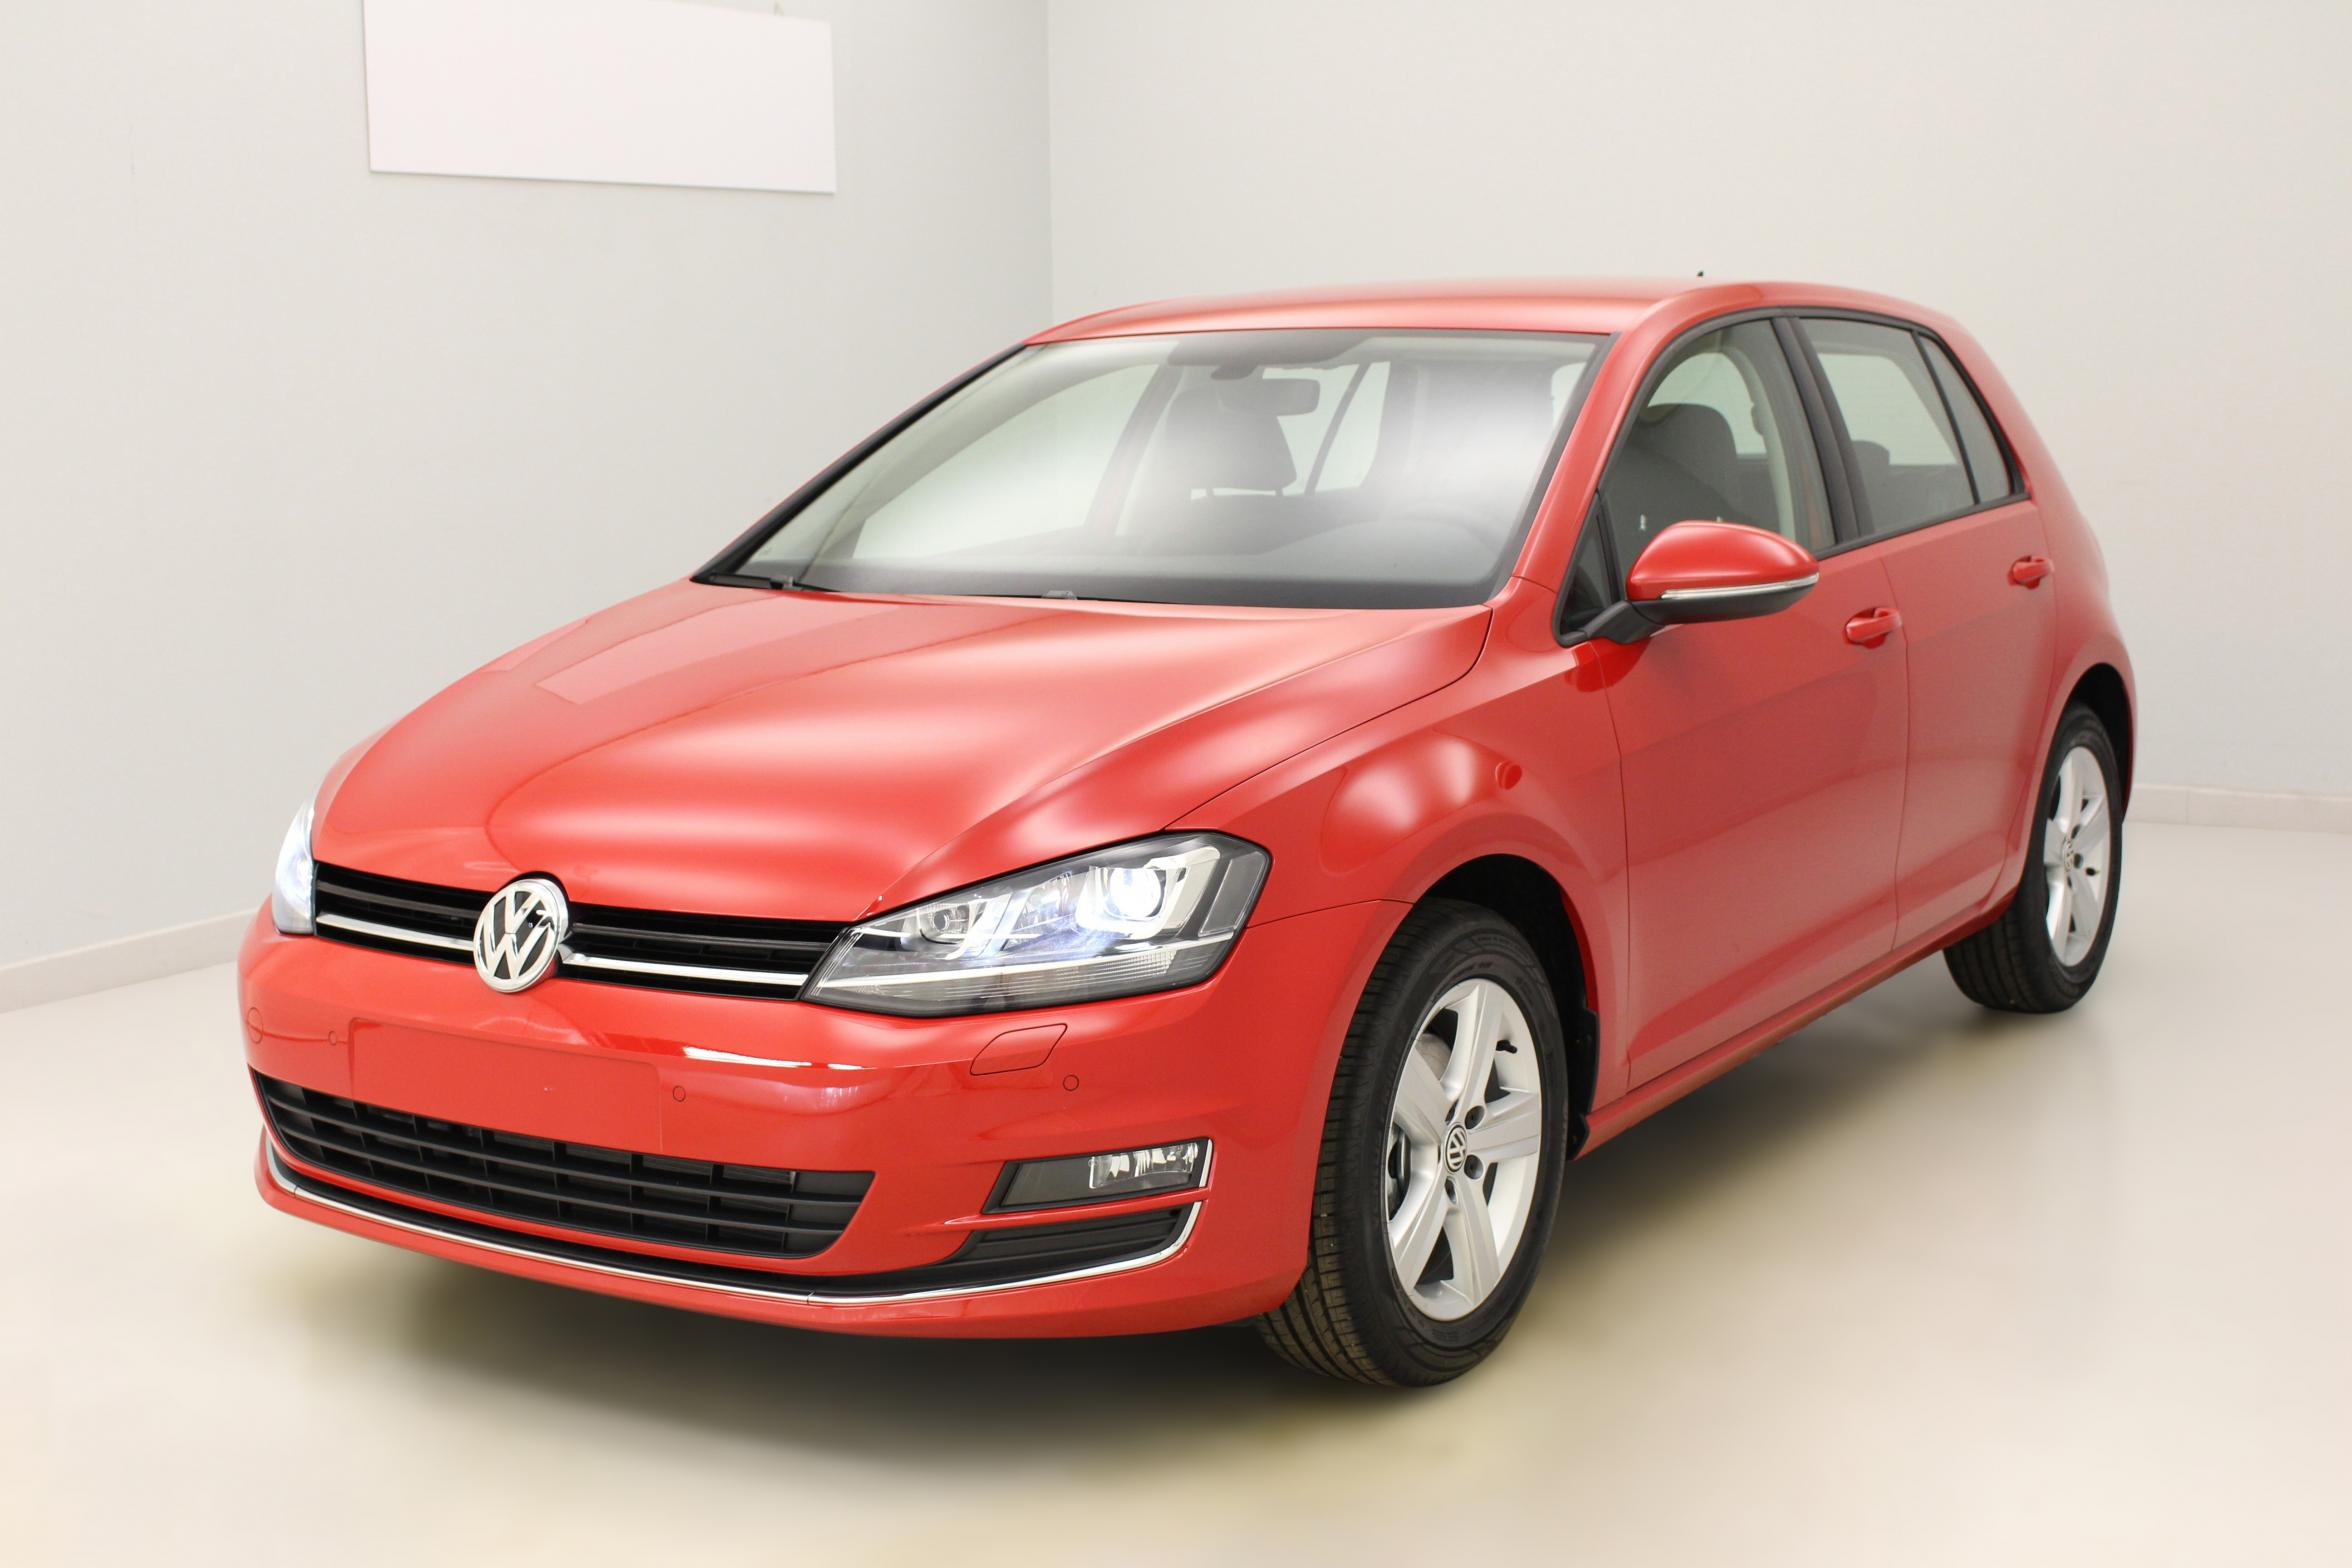 VOLKSWAGEN Golf VII 1.4 TSI 125 BlueMotion Technology Confortline Rouge Tornado + Discover Media + Roue de secours avec options